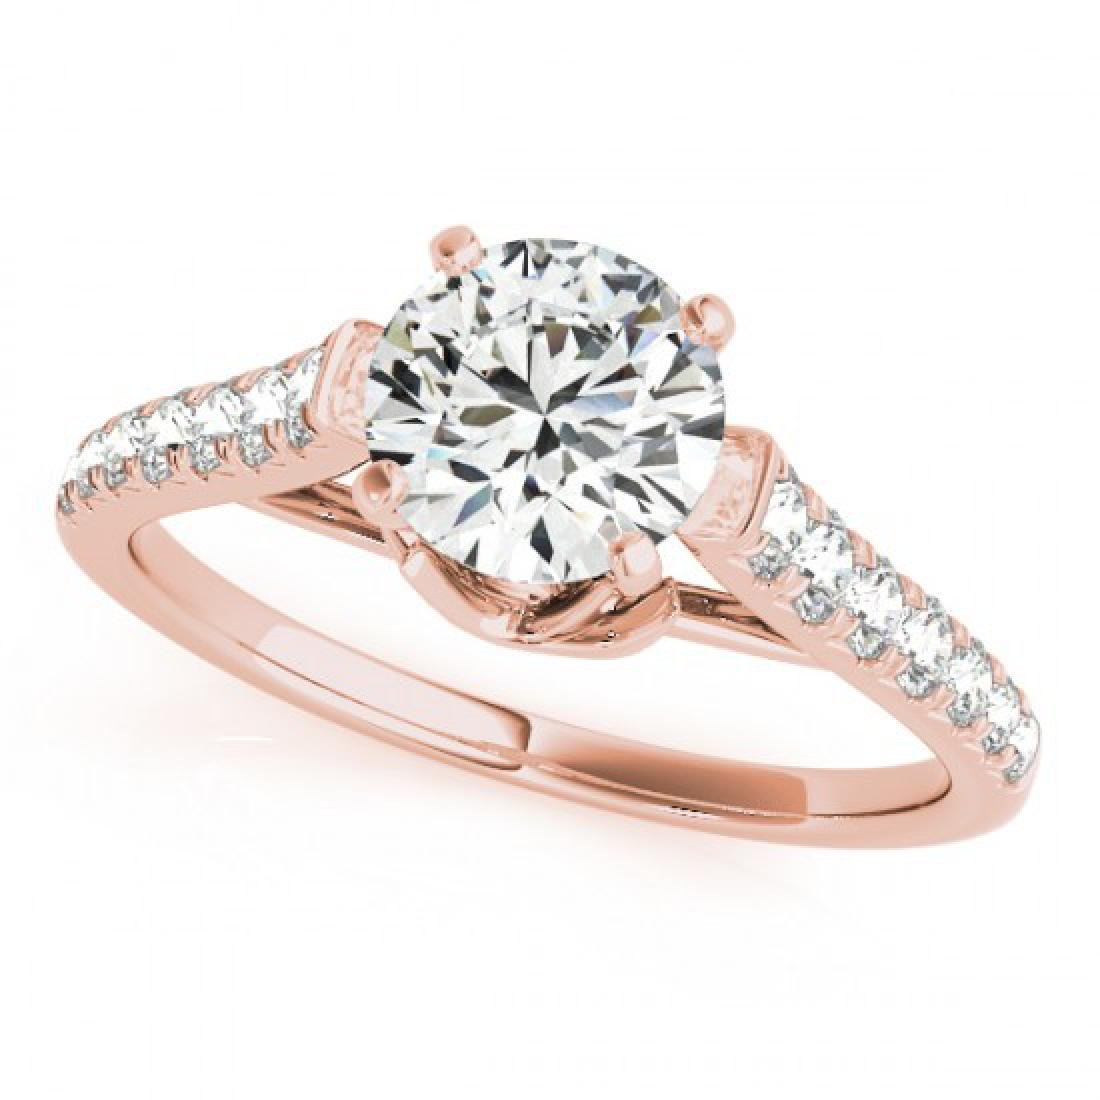 1.46 CTW Certified VS/SI Diamond Solitaire Ring 14K